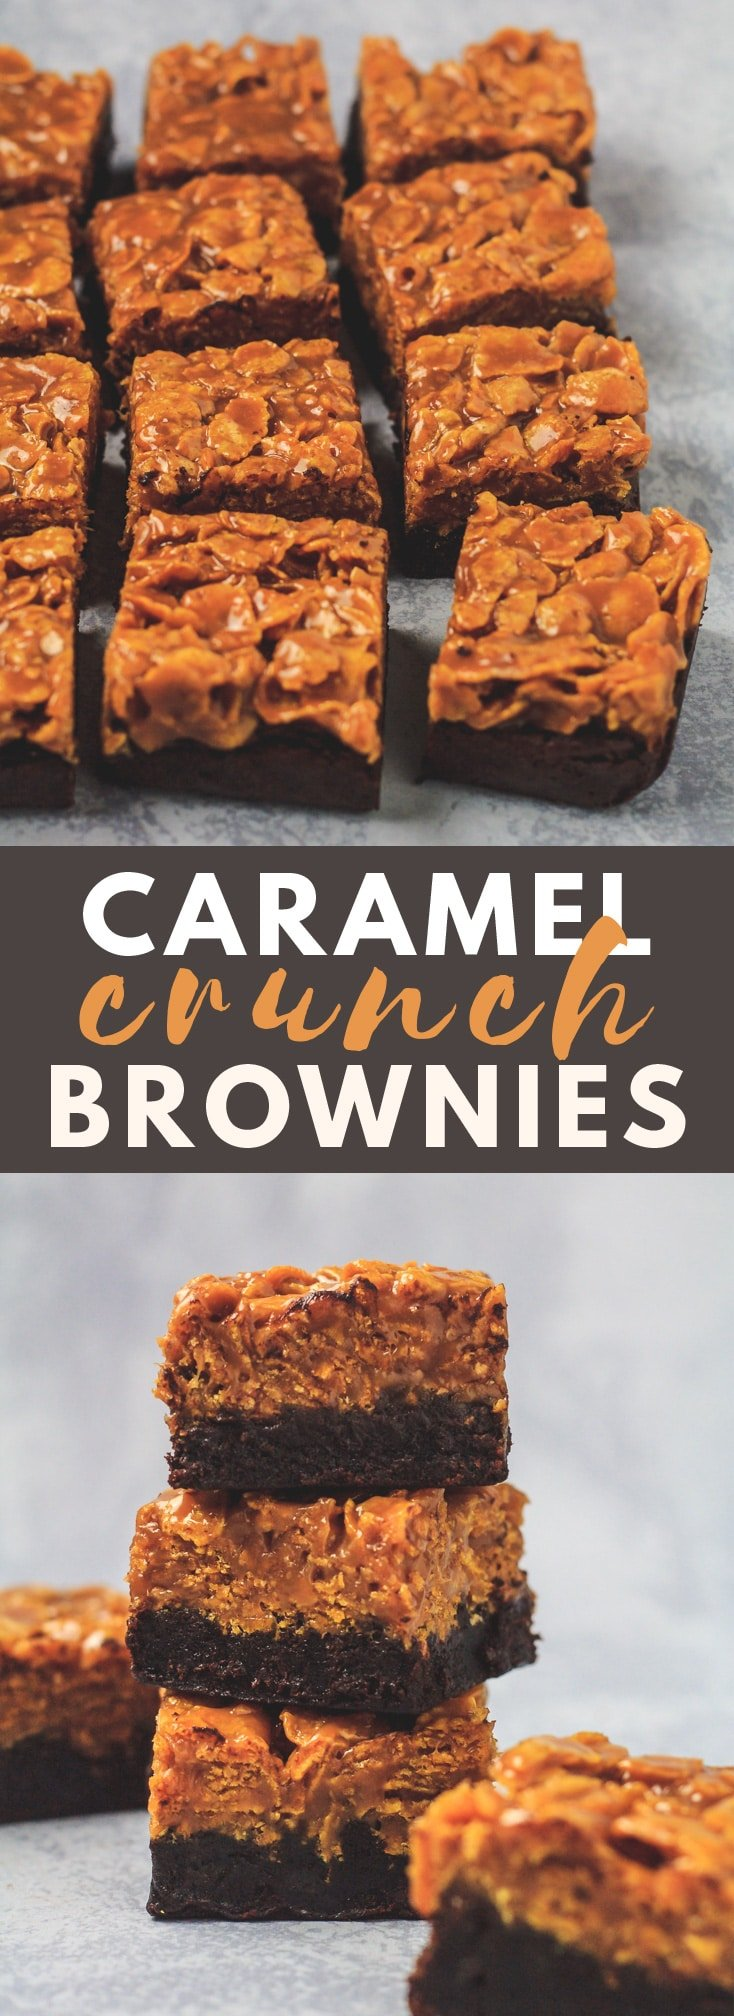 Caramel Crunch Brownies - Deliciously thick and fudgy brownies that are topped with a generous layer of caramel loaded with Cornflakes. The ultimate crunchy brownies!